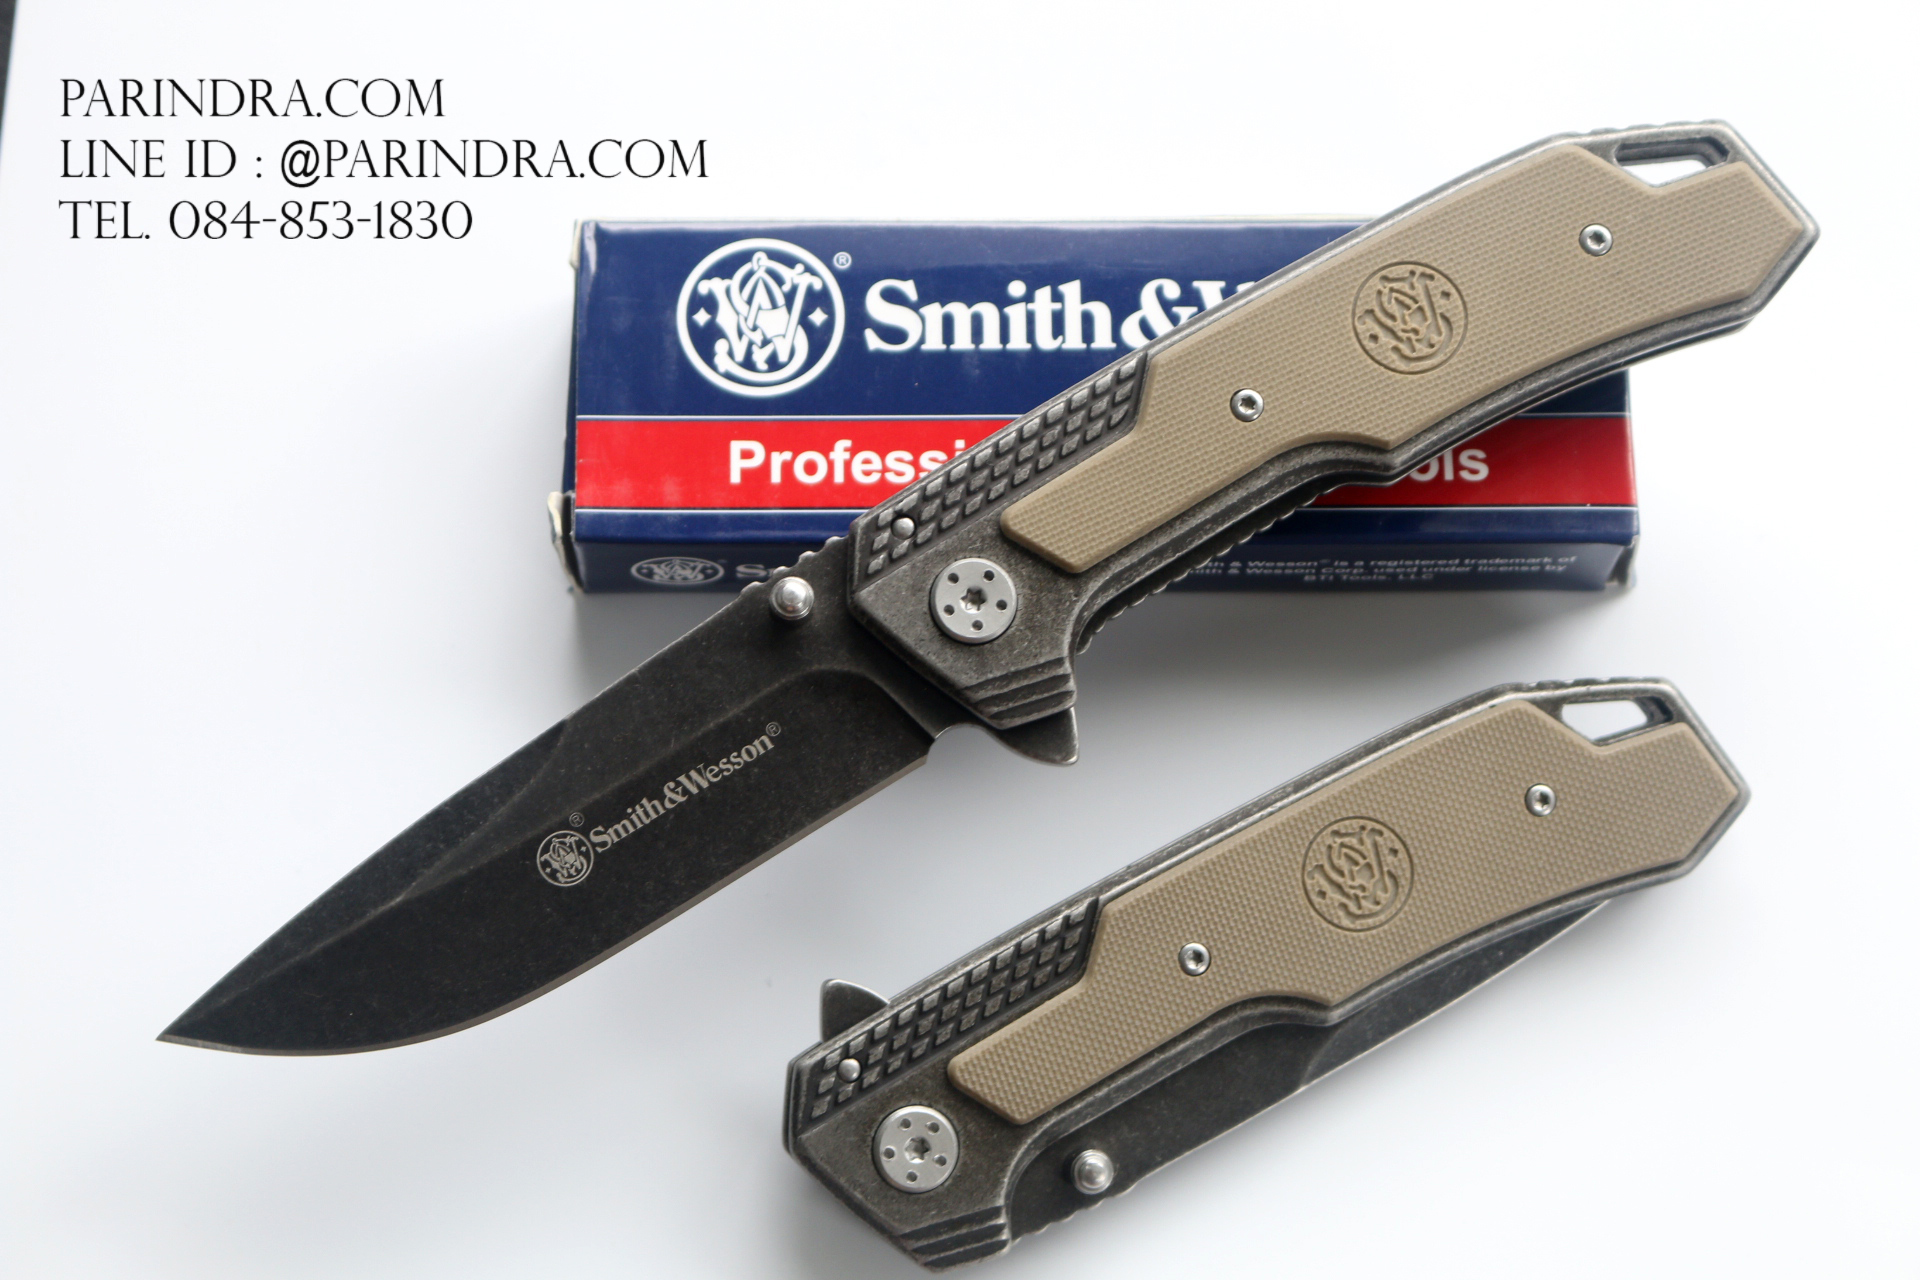 มีดพับ Smith & Wesson SW609 Stone Washed (OEM)